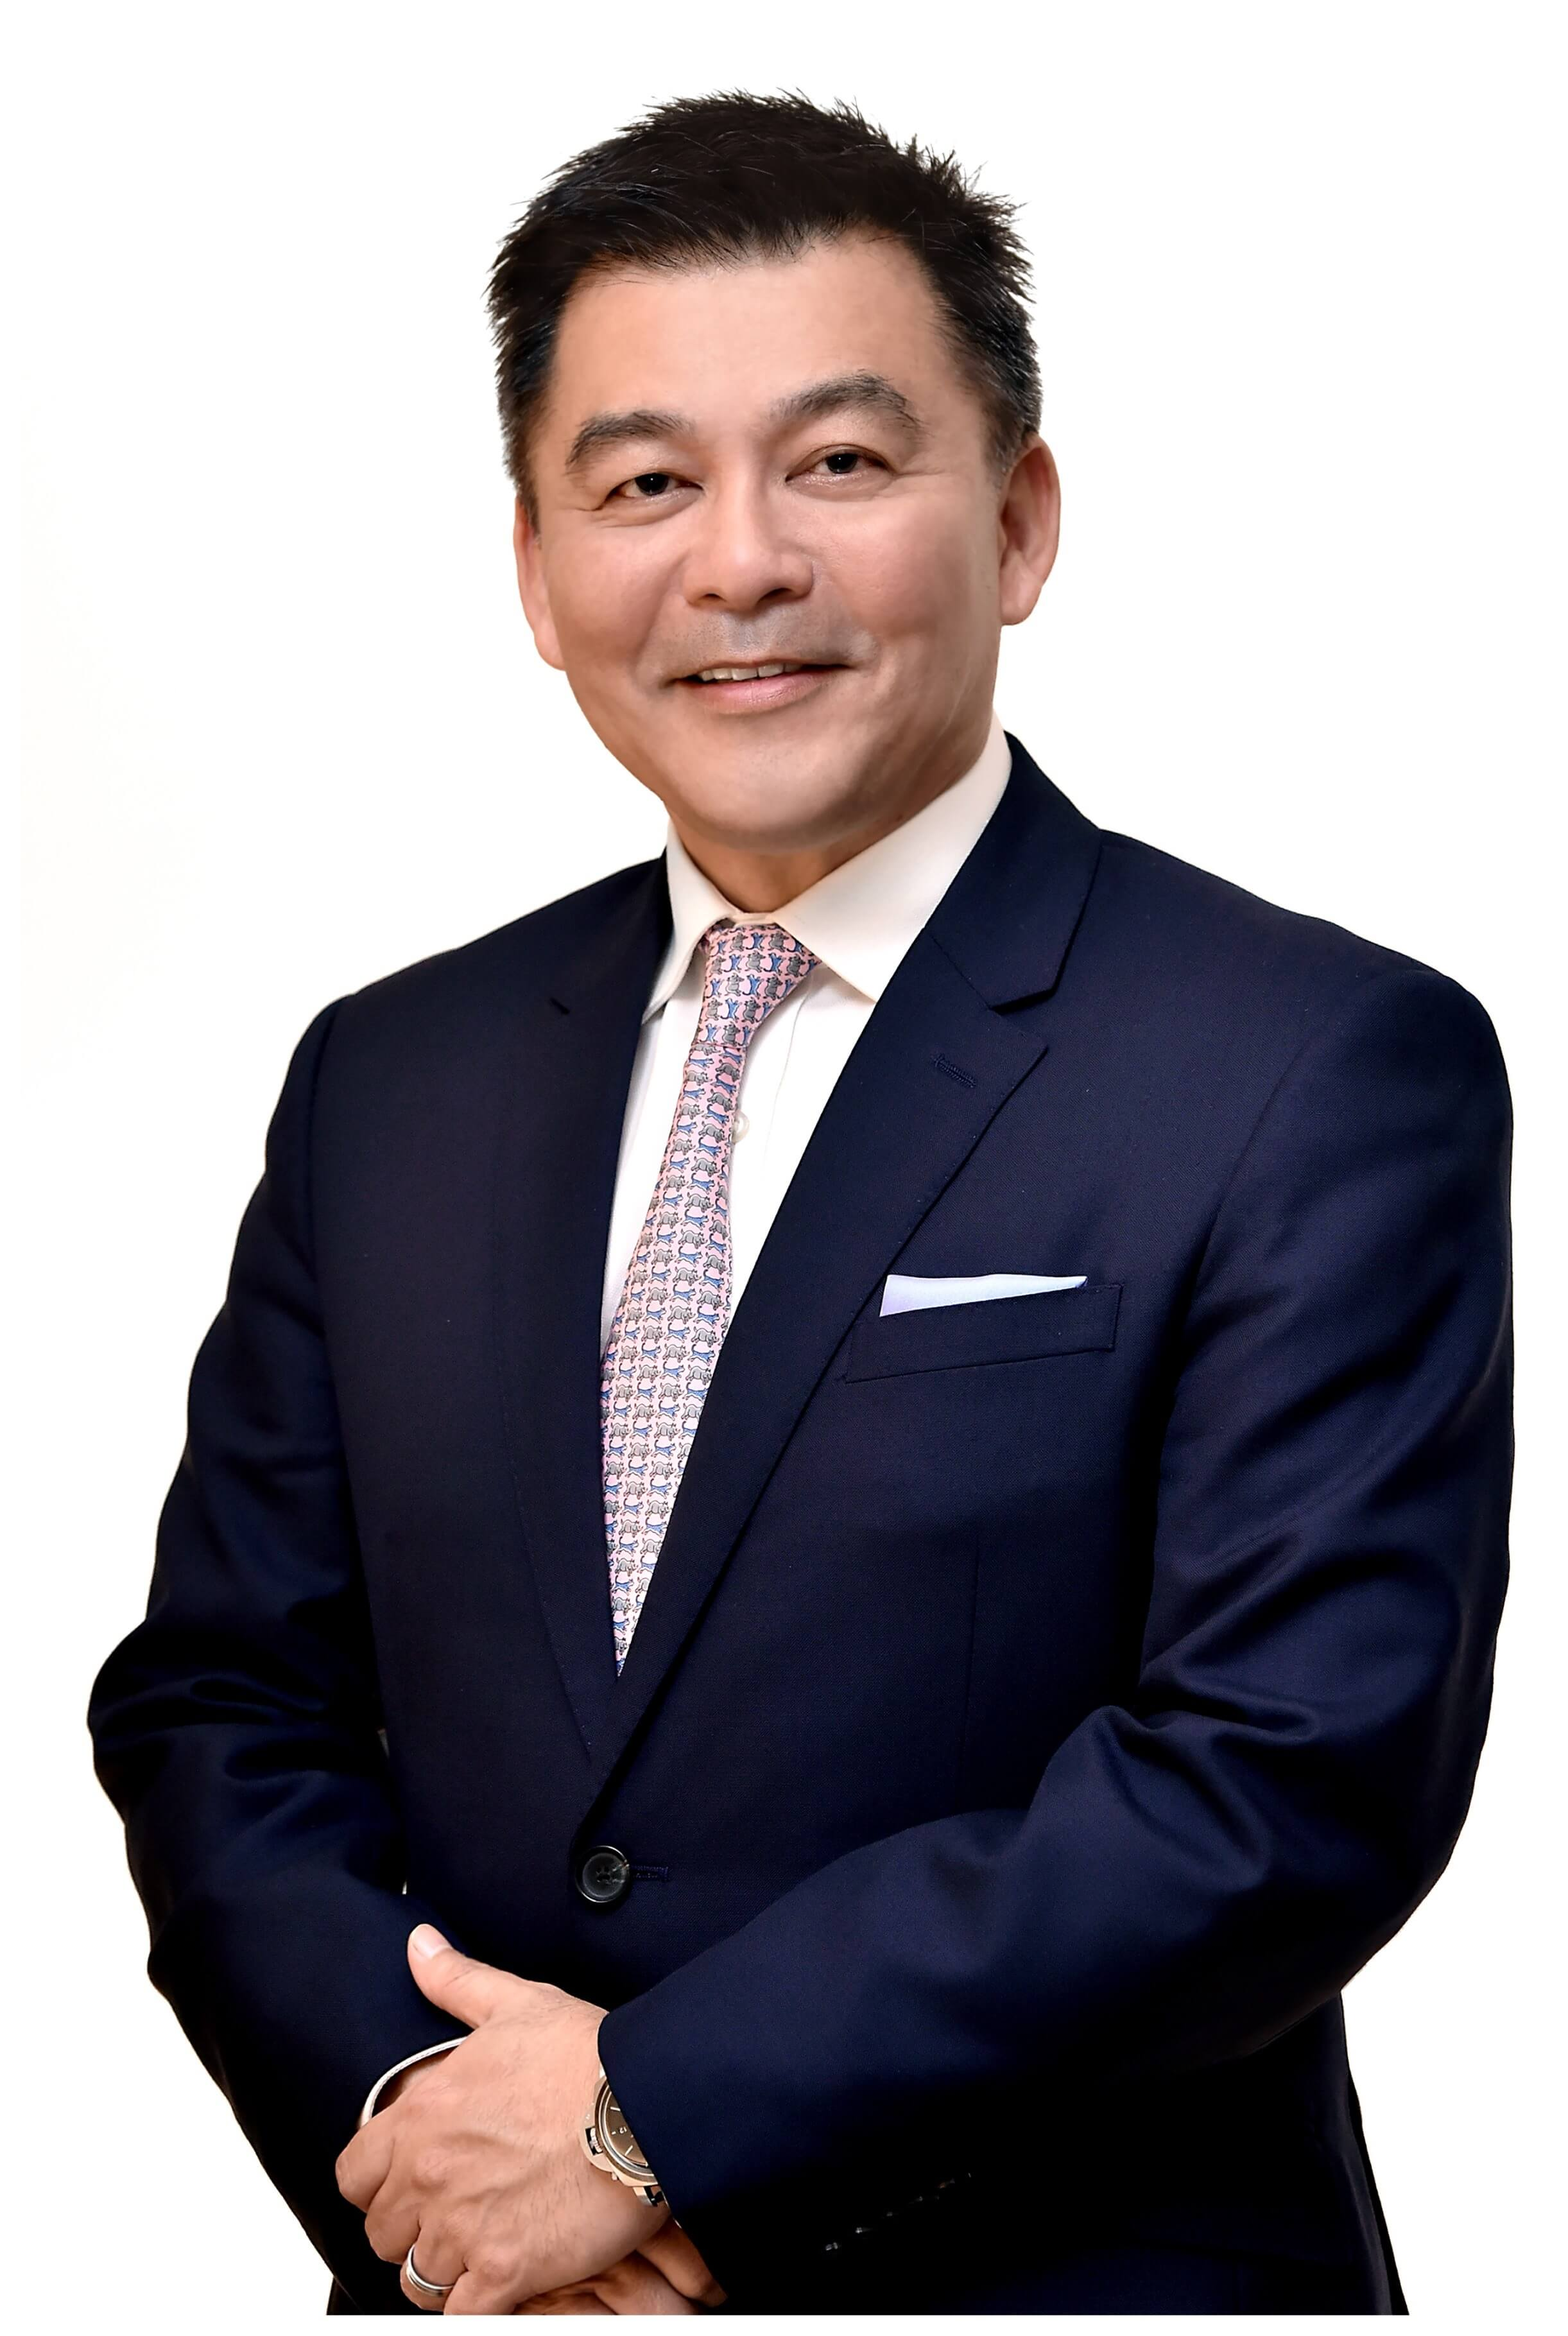 Genting Hong Kong announces new President of Dream Cruises